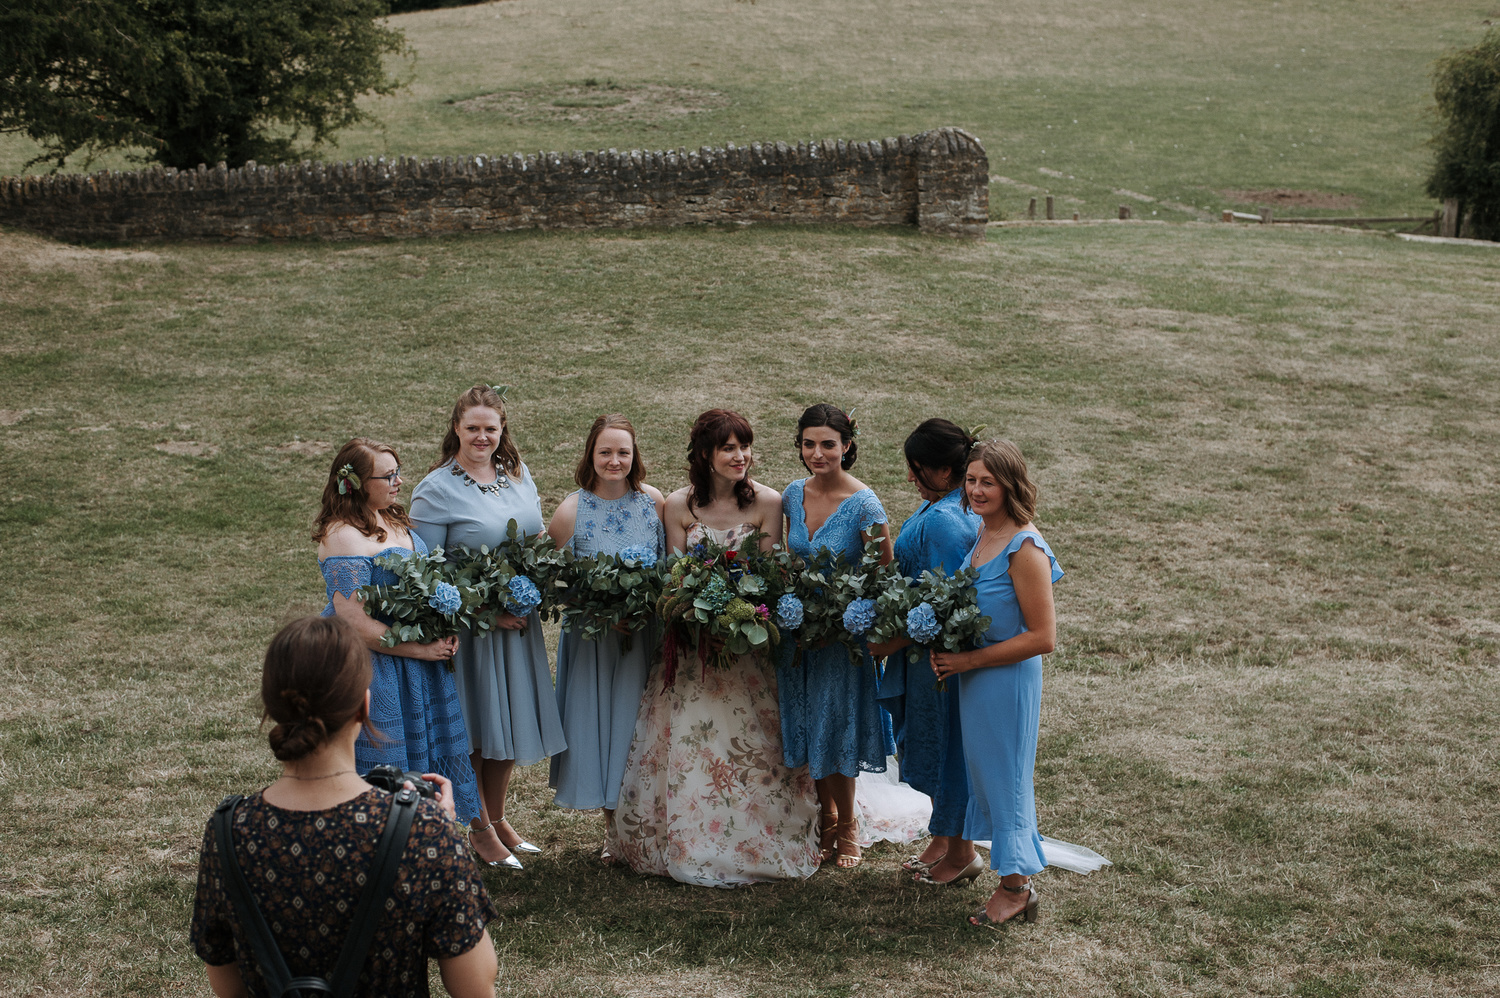 A group shot of bridesmaids and bride.